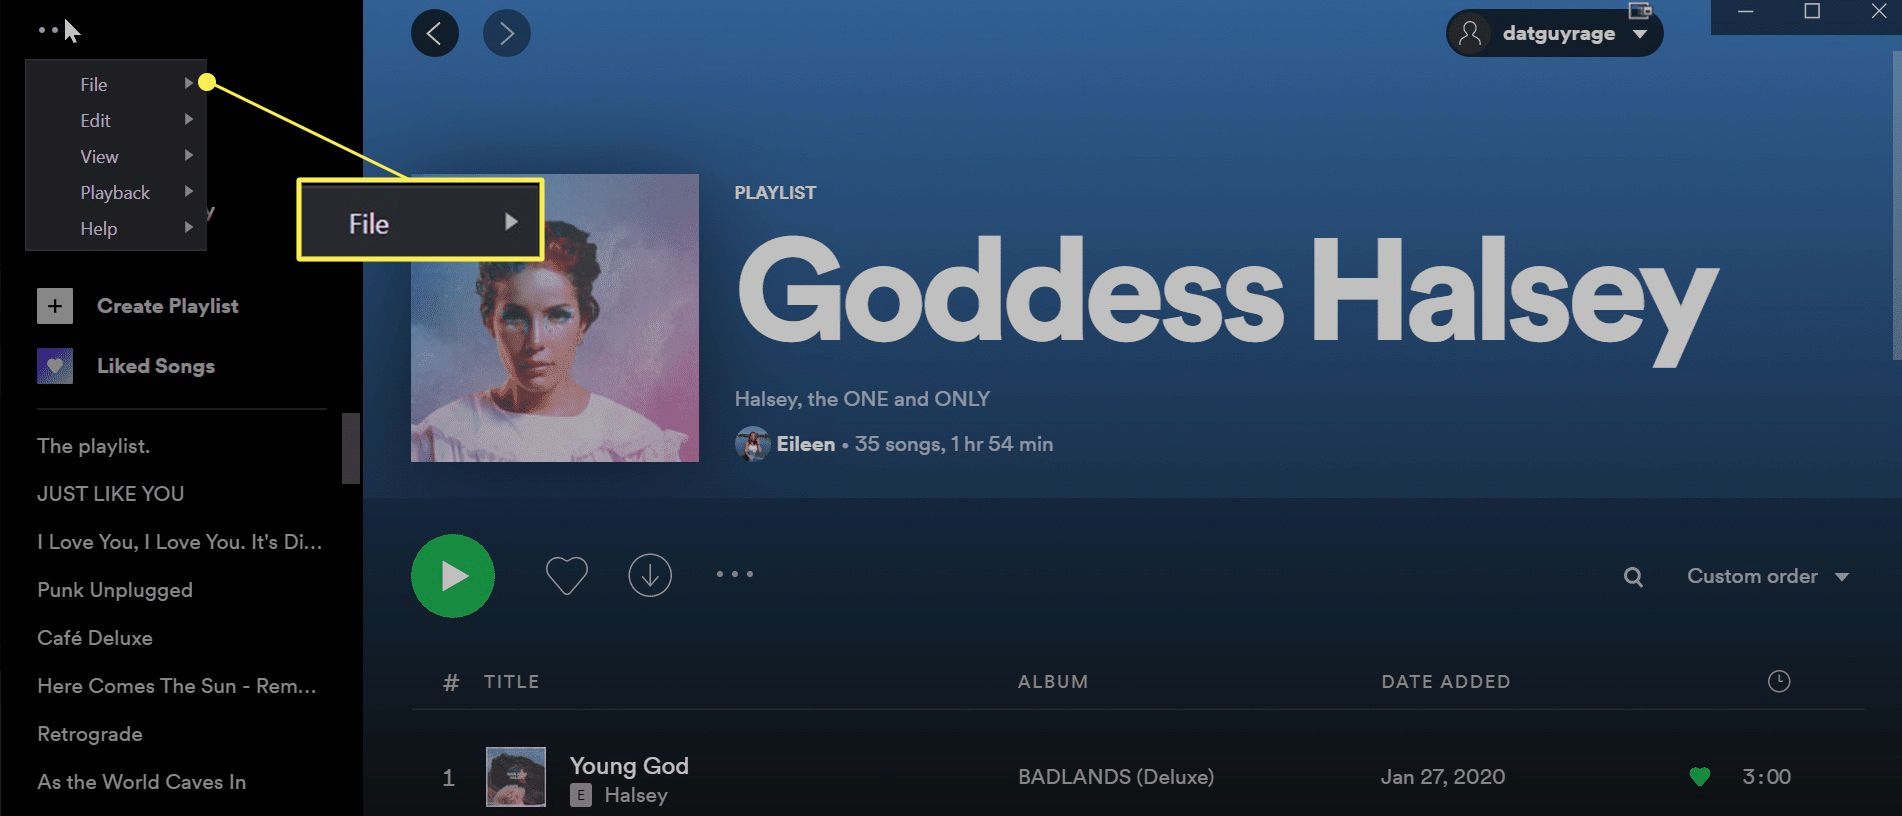 Spotify desktop app with File highlighted